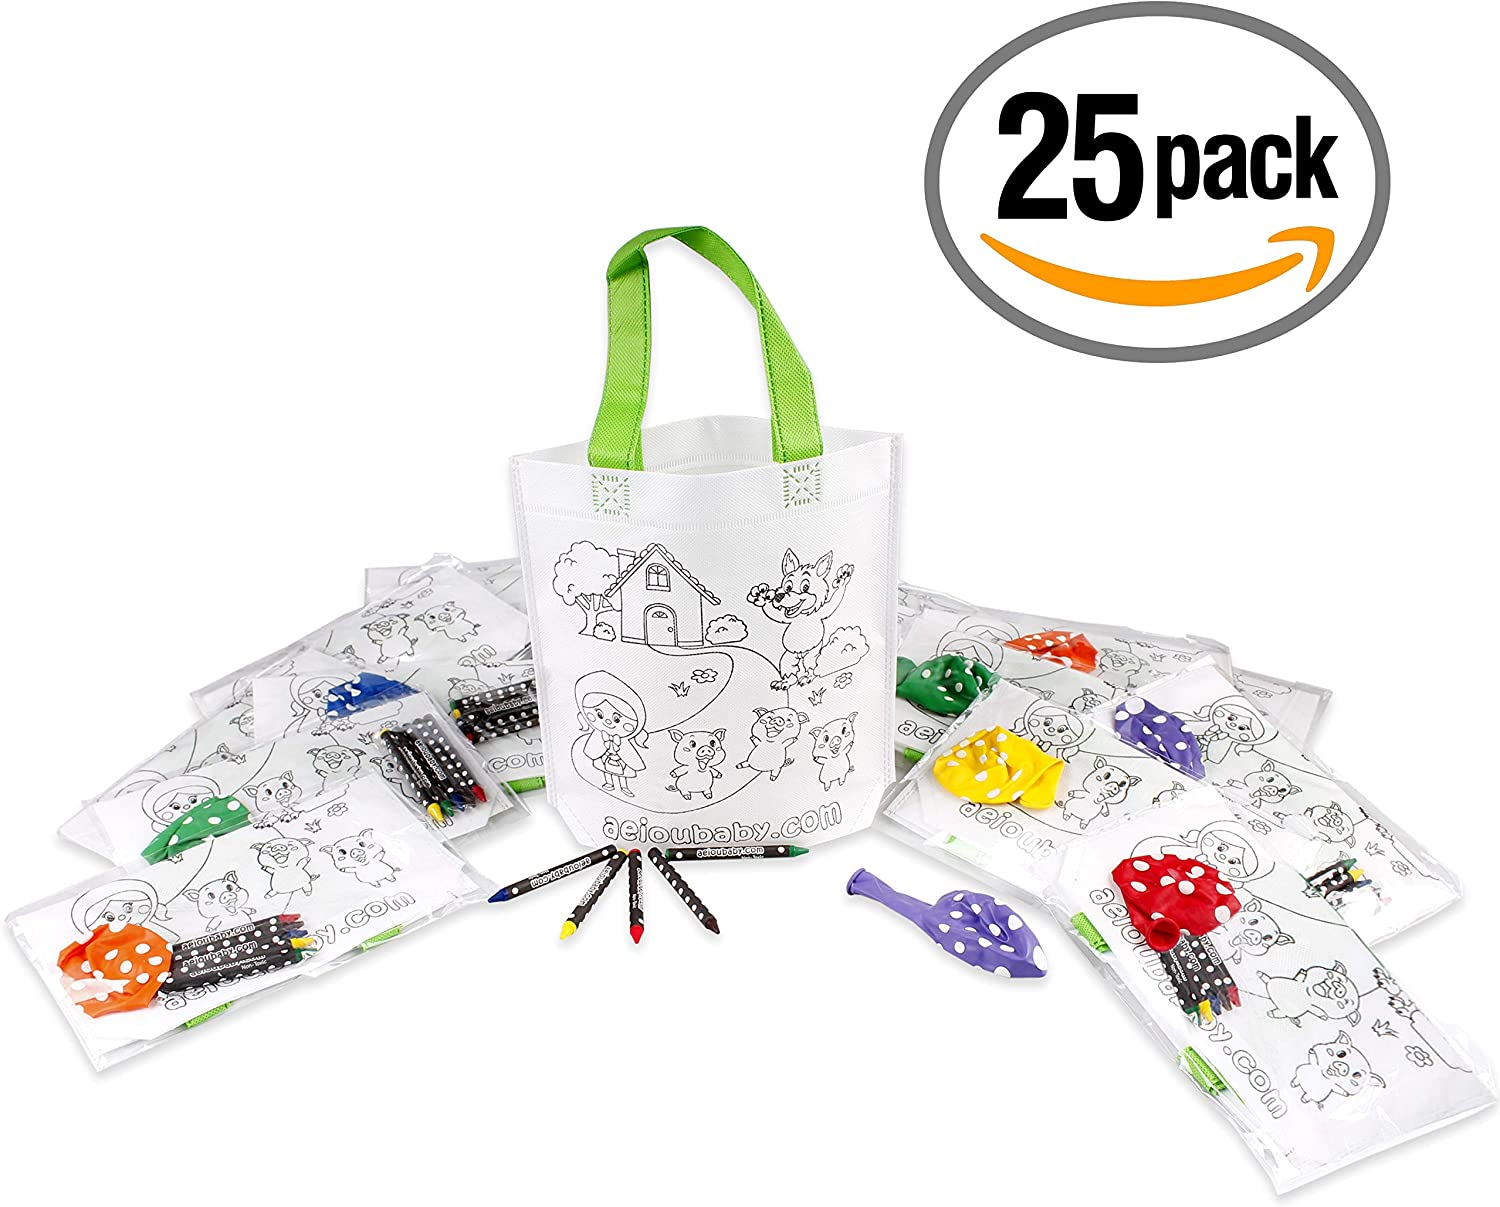 10 Individual Bags with 5 Coloured Crayons and a Balloon 10 Pencil Cases Color Your Own Childrens Gift for Parties and Birthdays